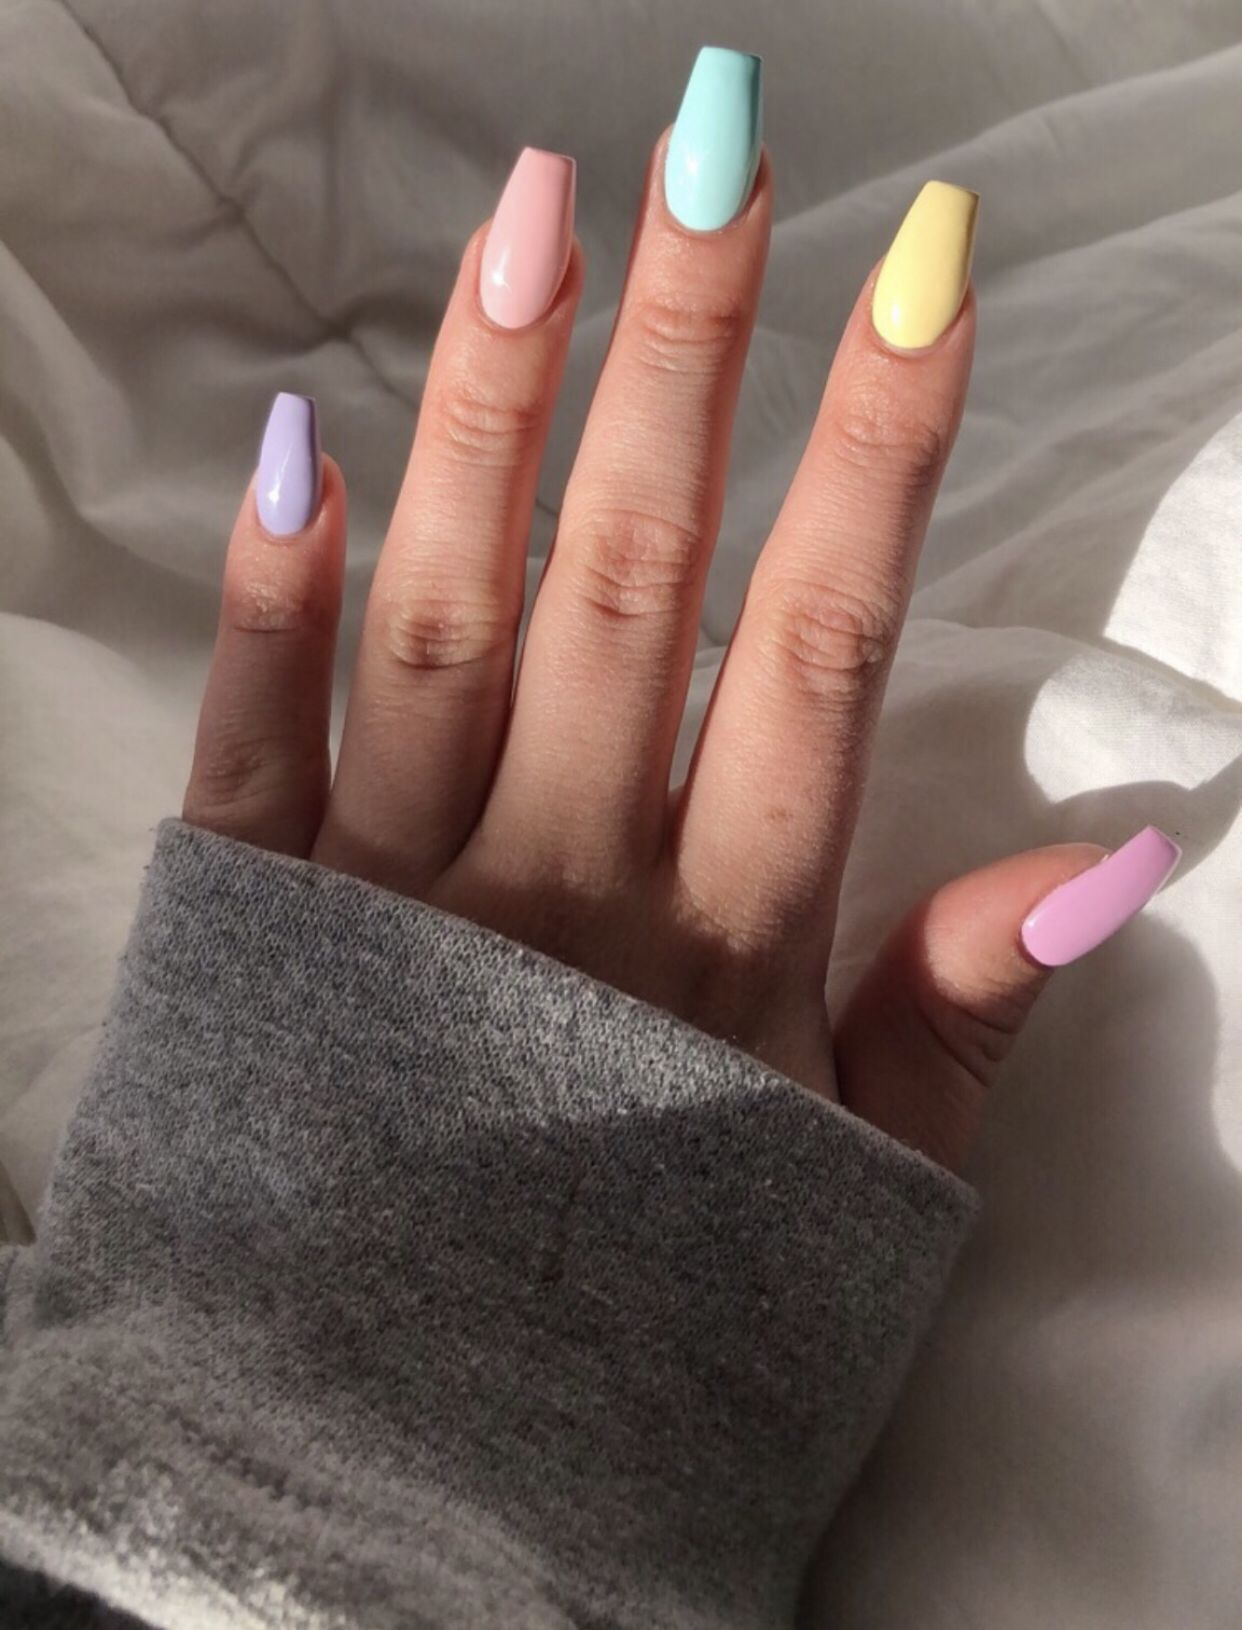 Pin By Alexa Raye On C L A W S In 2020 Summer Acrylic Nails